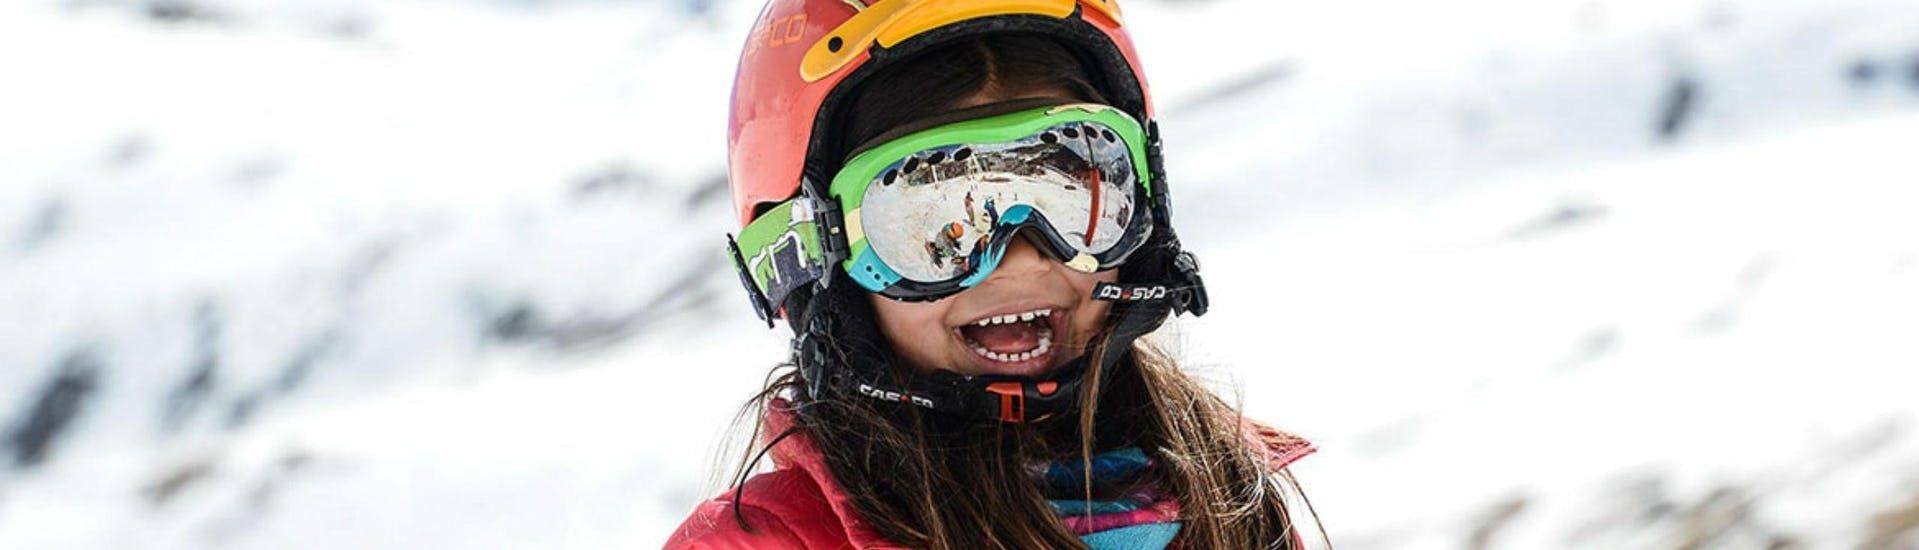 A young girl is laughing and seemingly enjoying herself during her Private Ski Lessons for Kids - High Season with the ski school Prosneige Méribel.